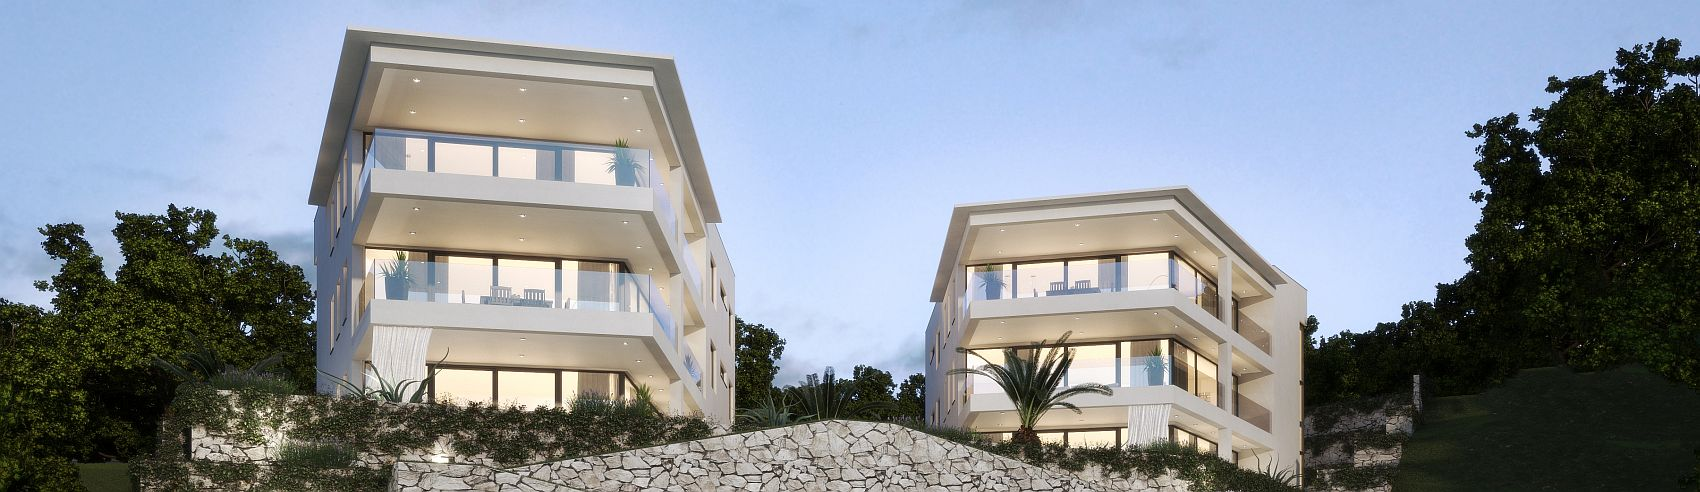 EXCLUSIVE APARTMENT WITH PANORAMIC SEA VIEW, IN THE FIRST ROW BY THE BEACH!